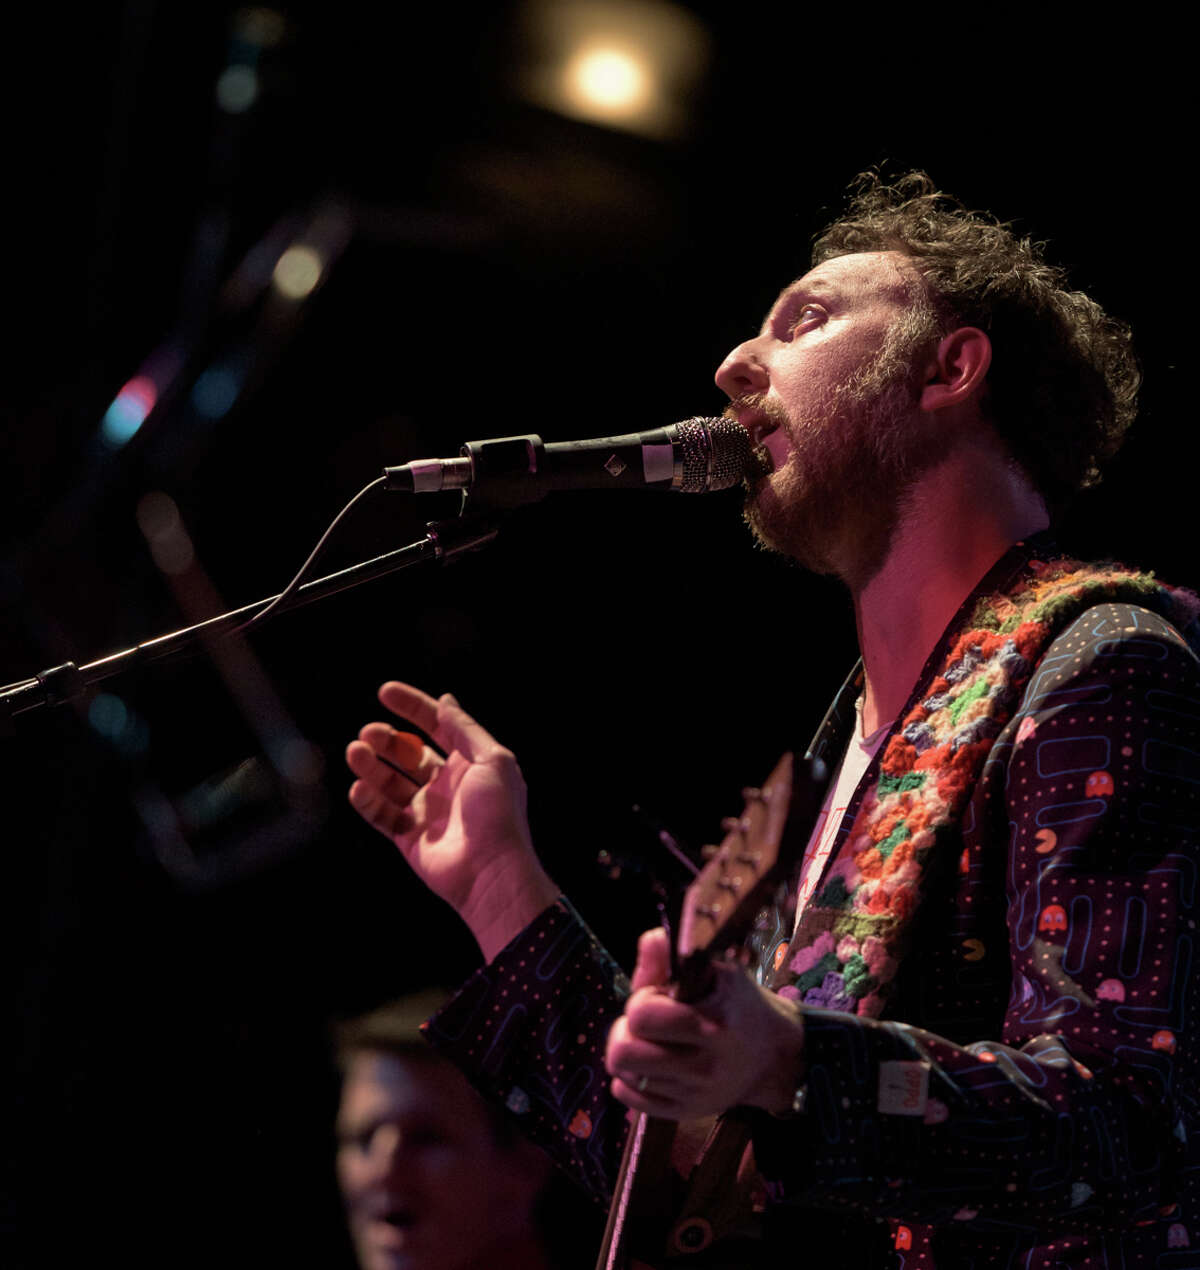 Ryan Miller performs with Guster at The Heights Theater, March 27, 2019.